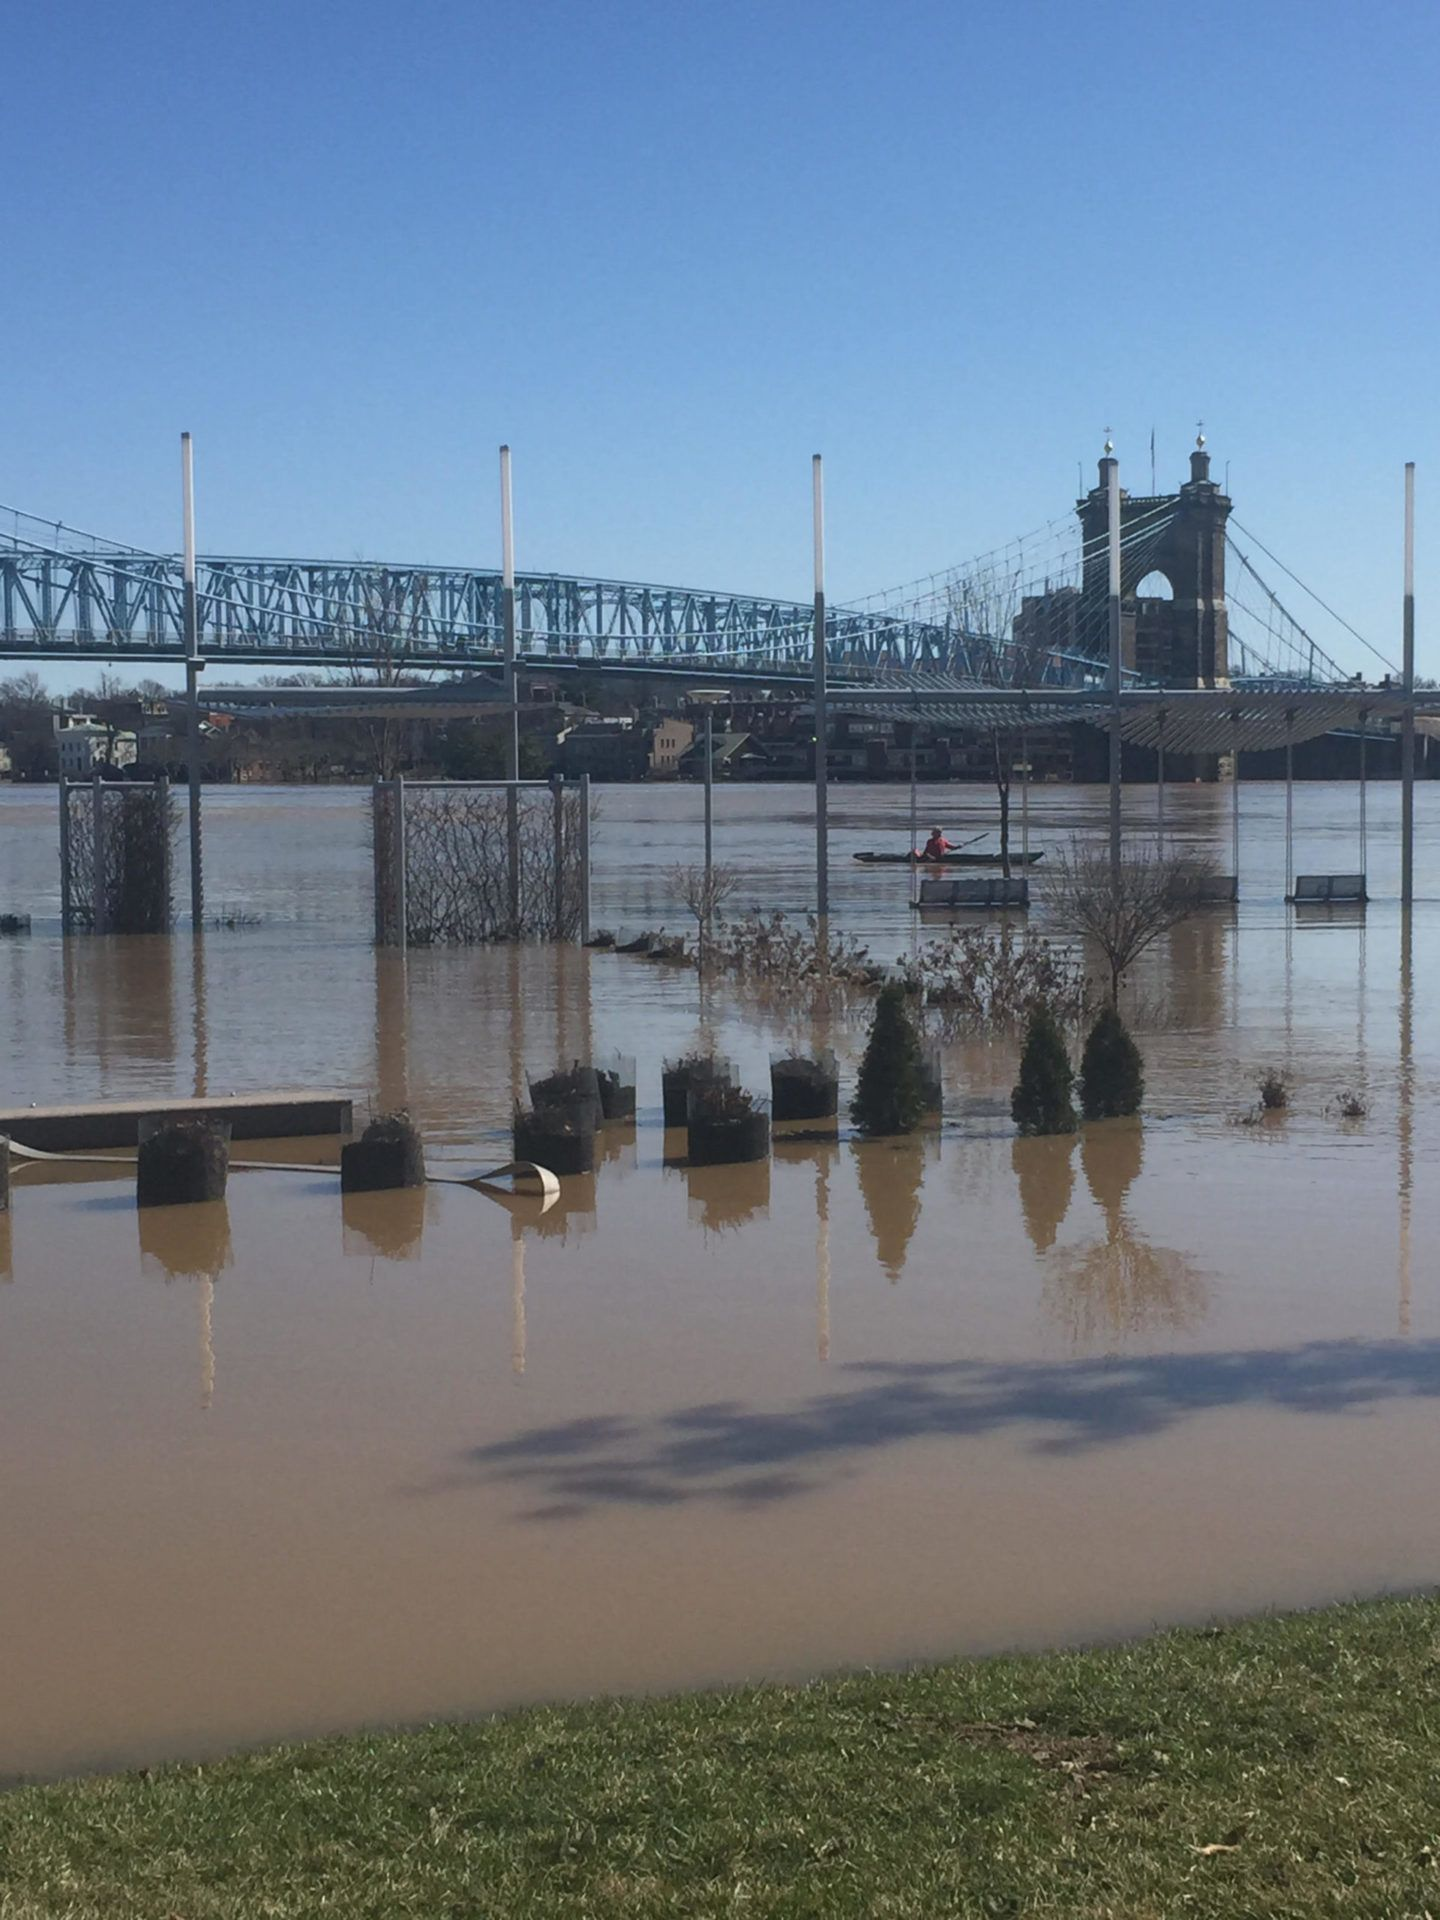 Cincinnati Enquirer Opinion Piece: Future uncertain for Ohio River water quality